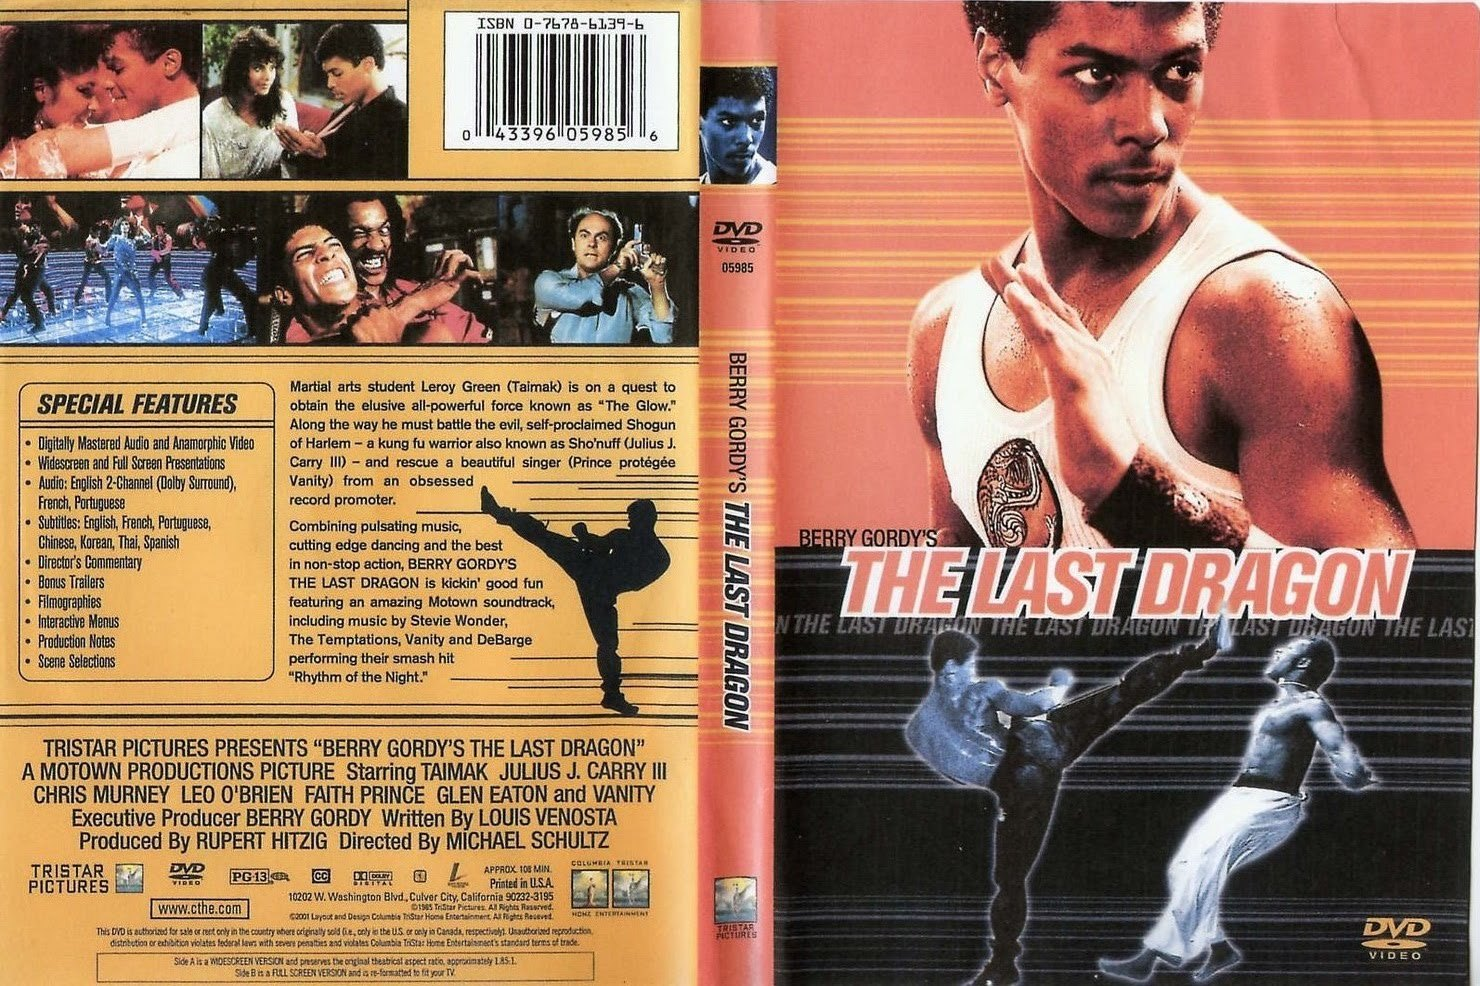 The Last dragon dear HD Wallpaper